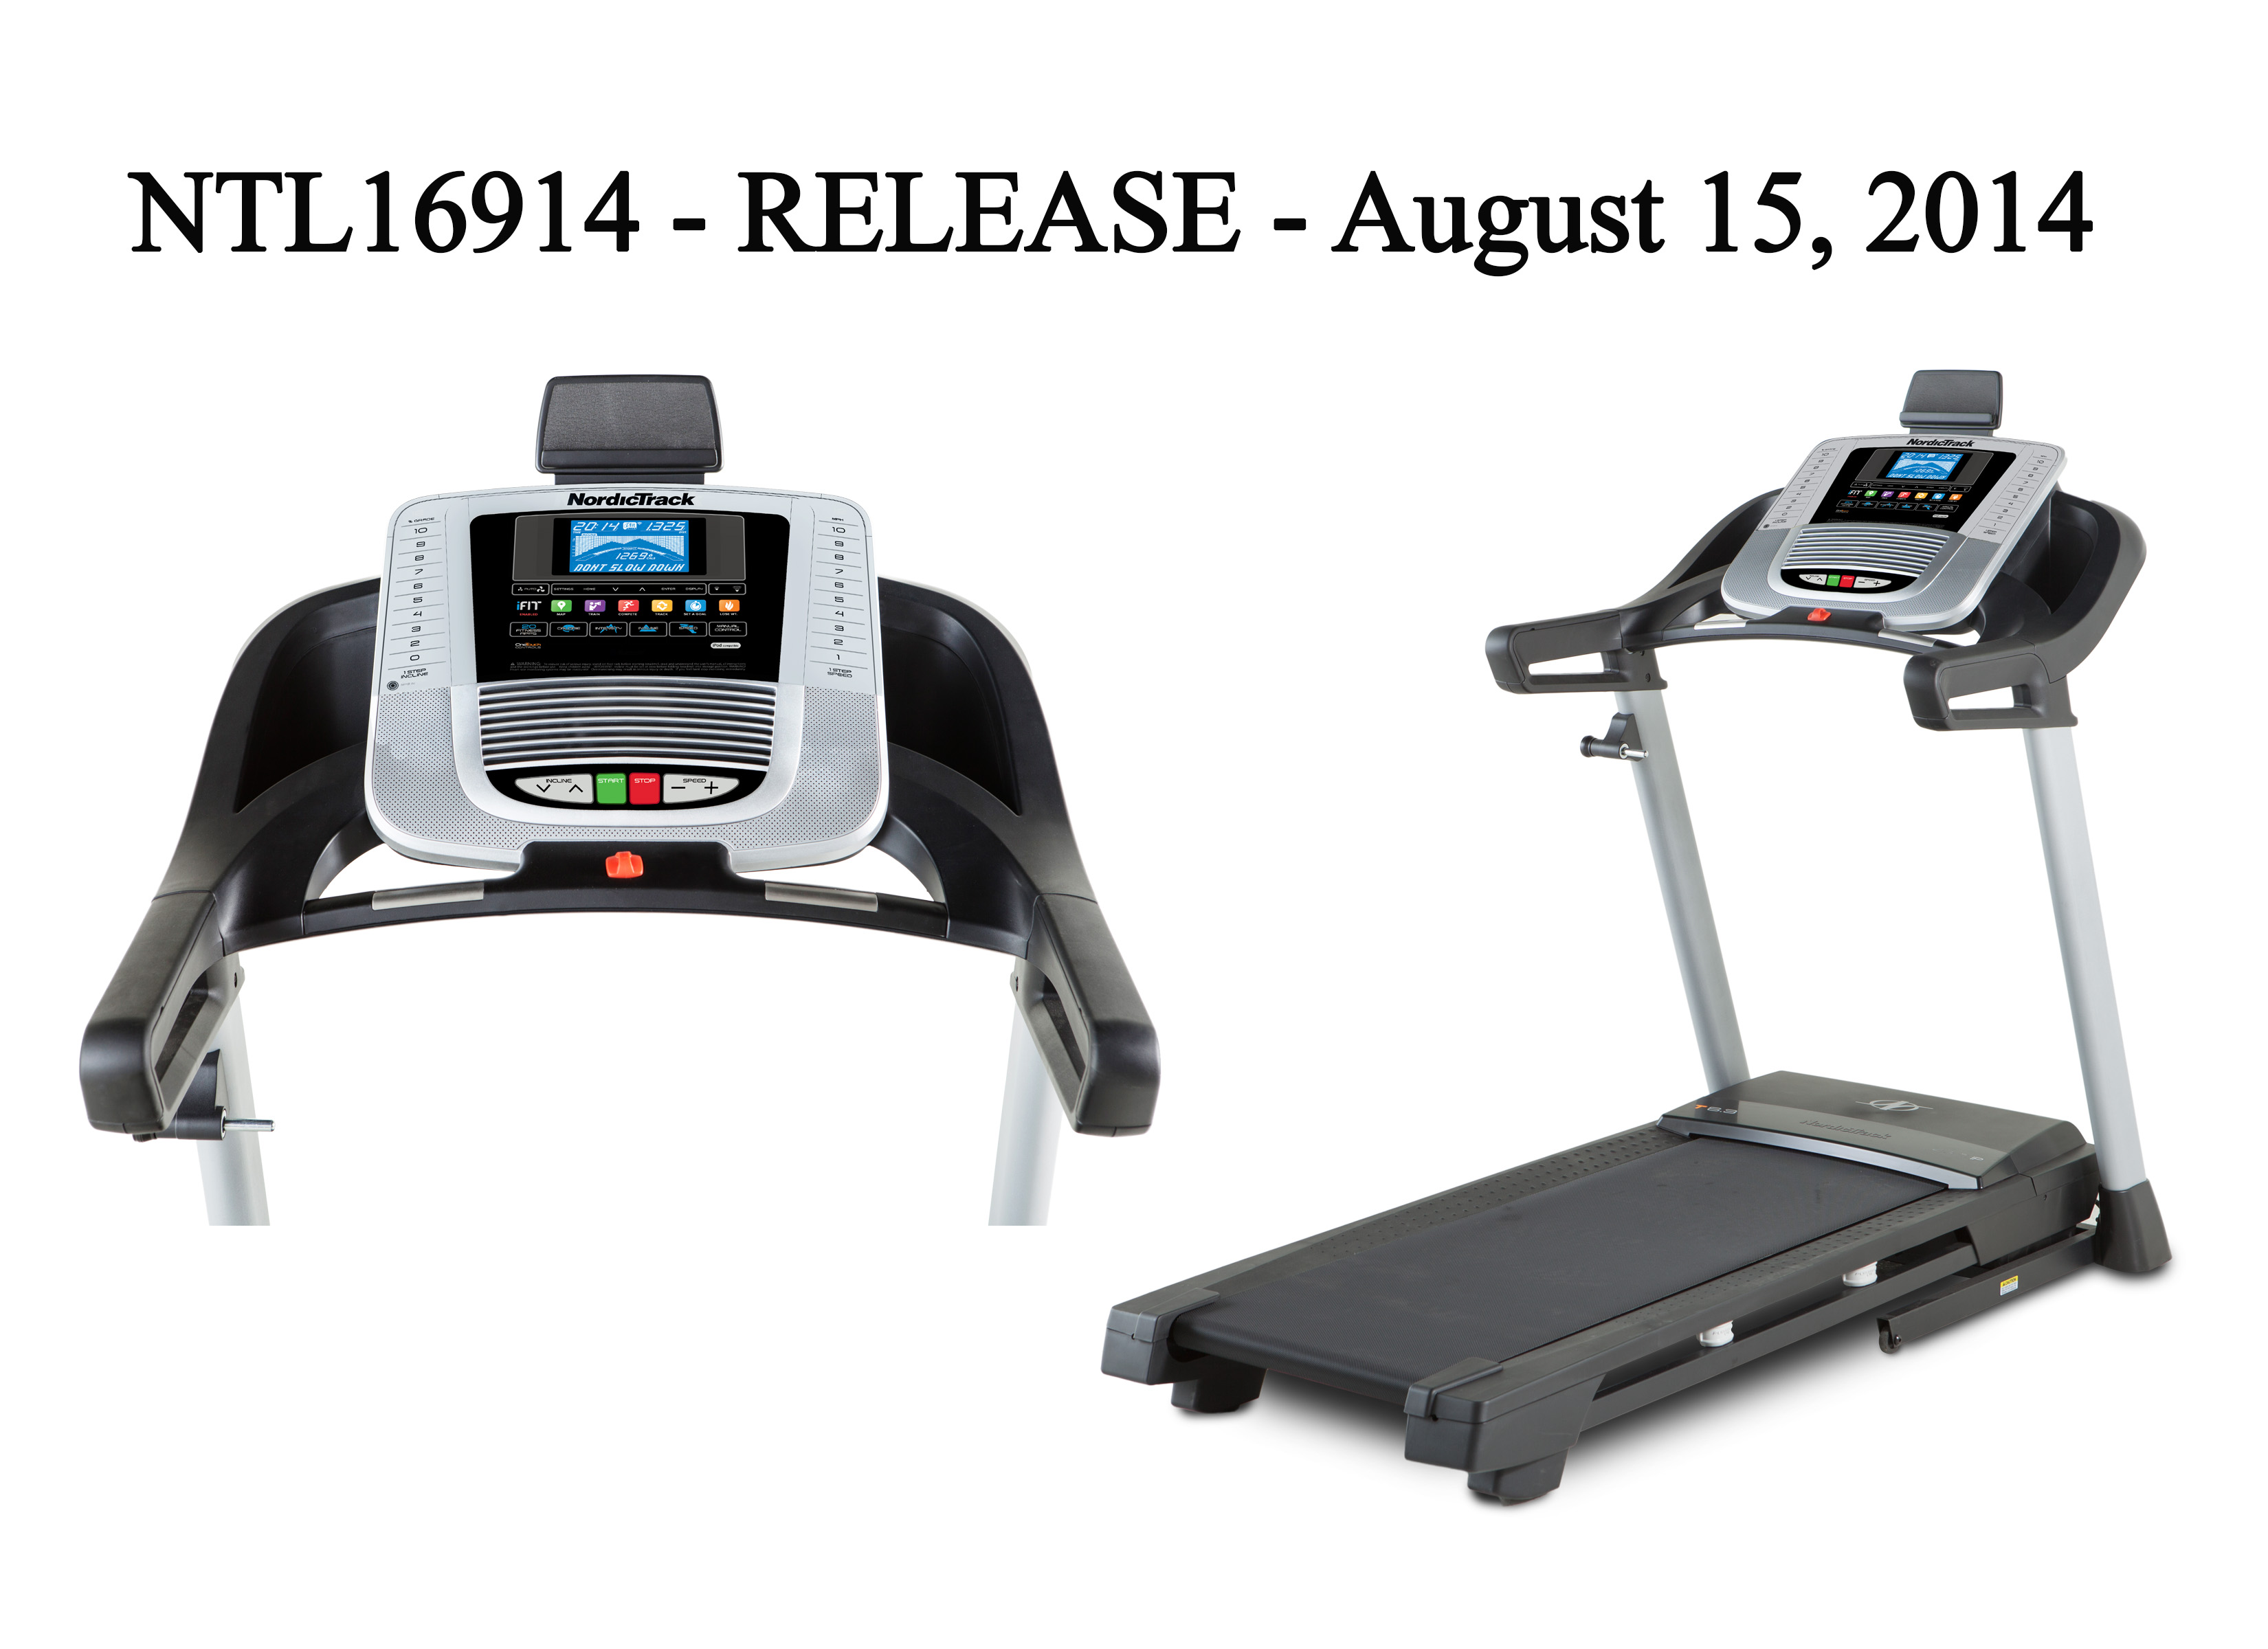 Equipment owned by TeNel Nyquist (allstarz) | iFit